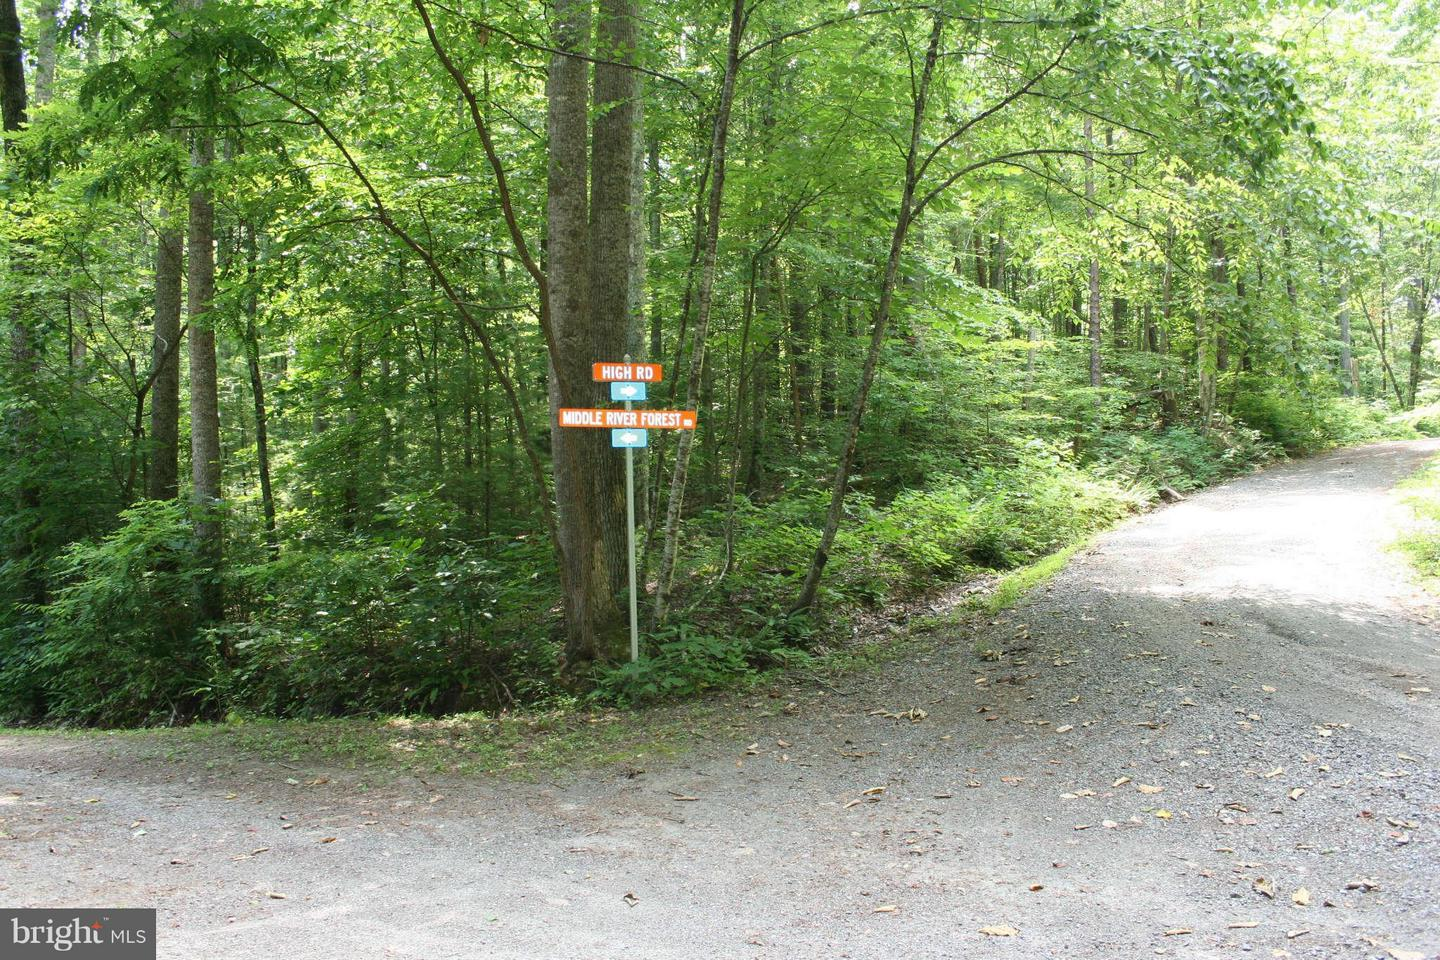 Land for Sale at High Rd Madison, Virginia 22727 United States